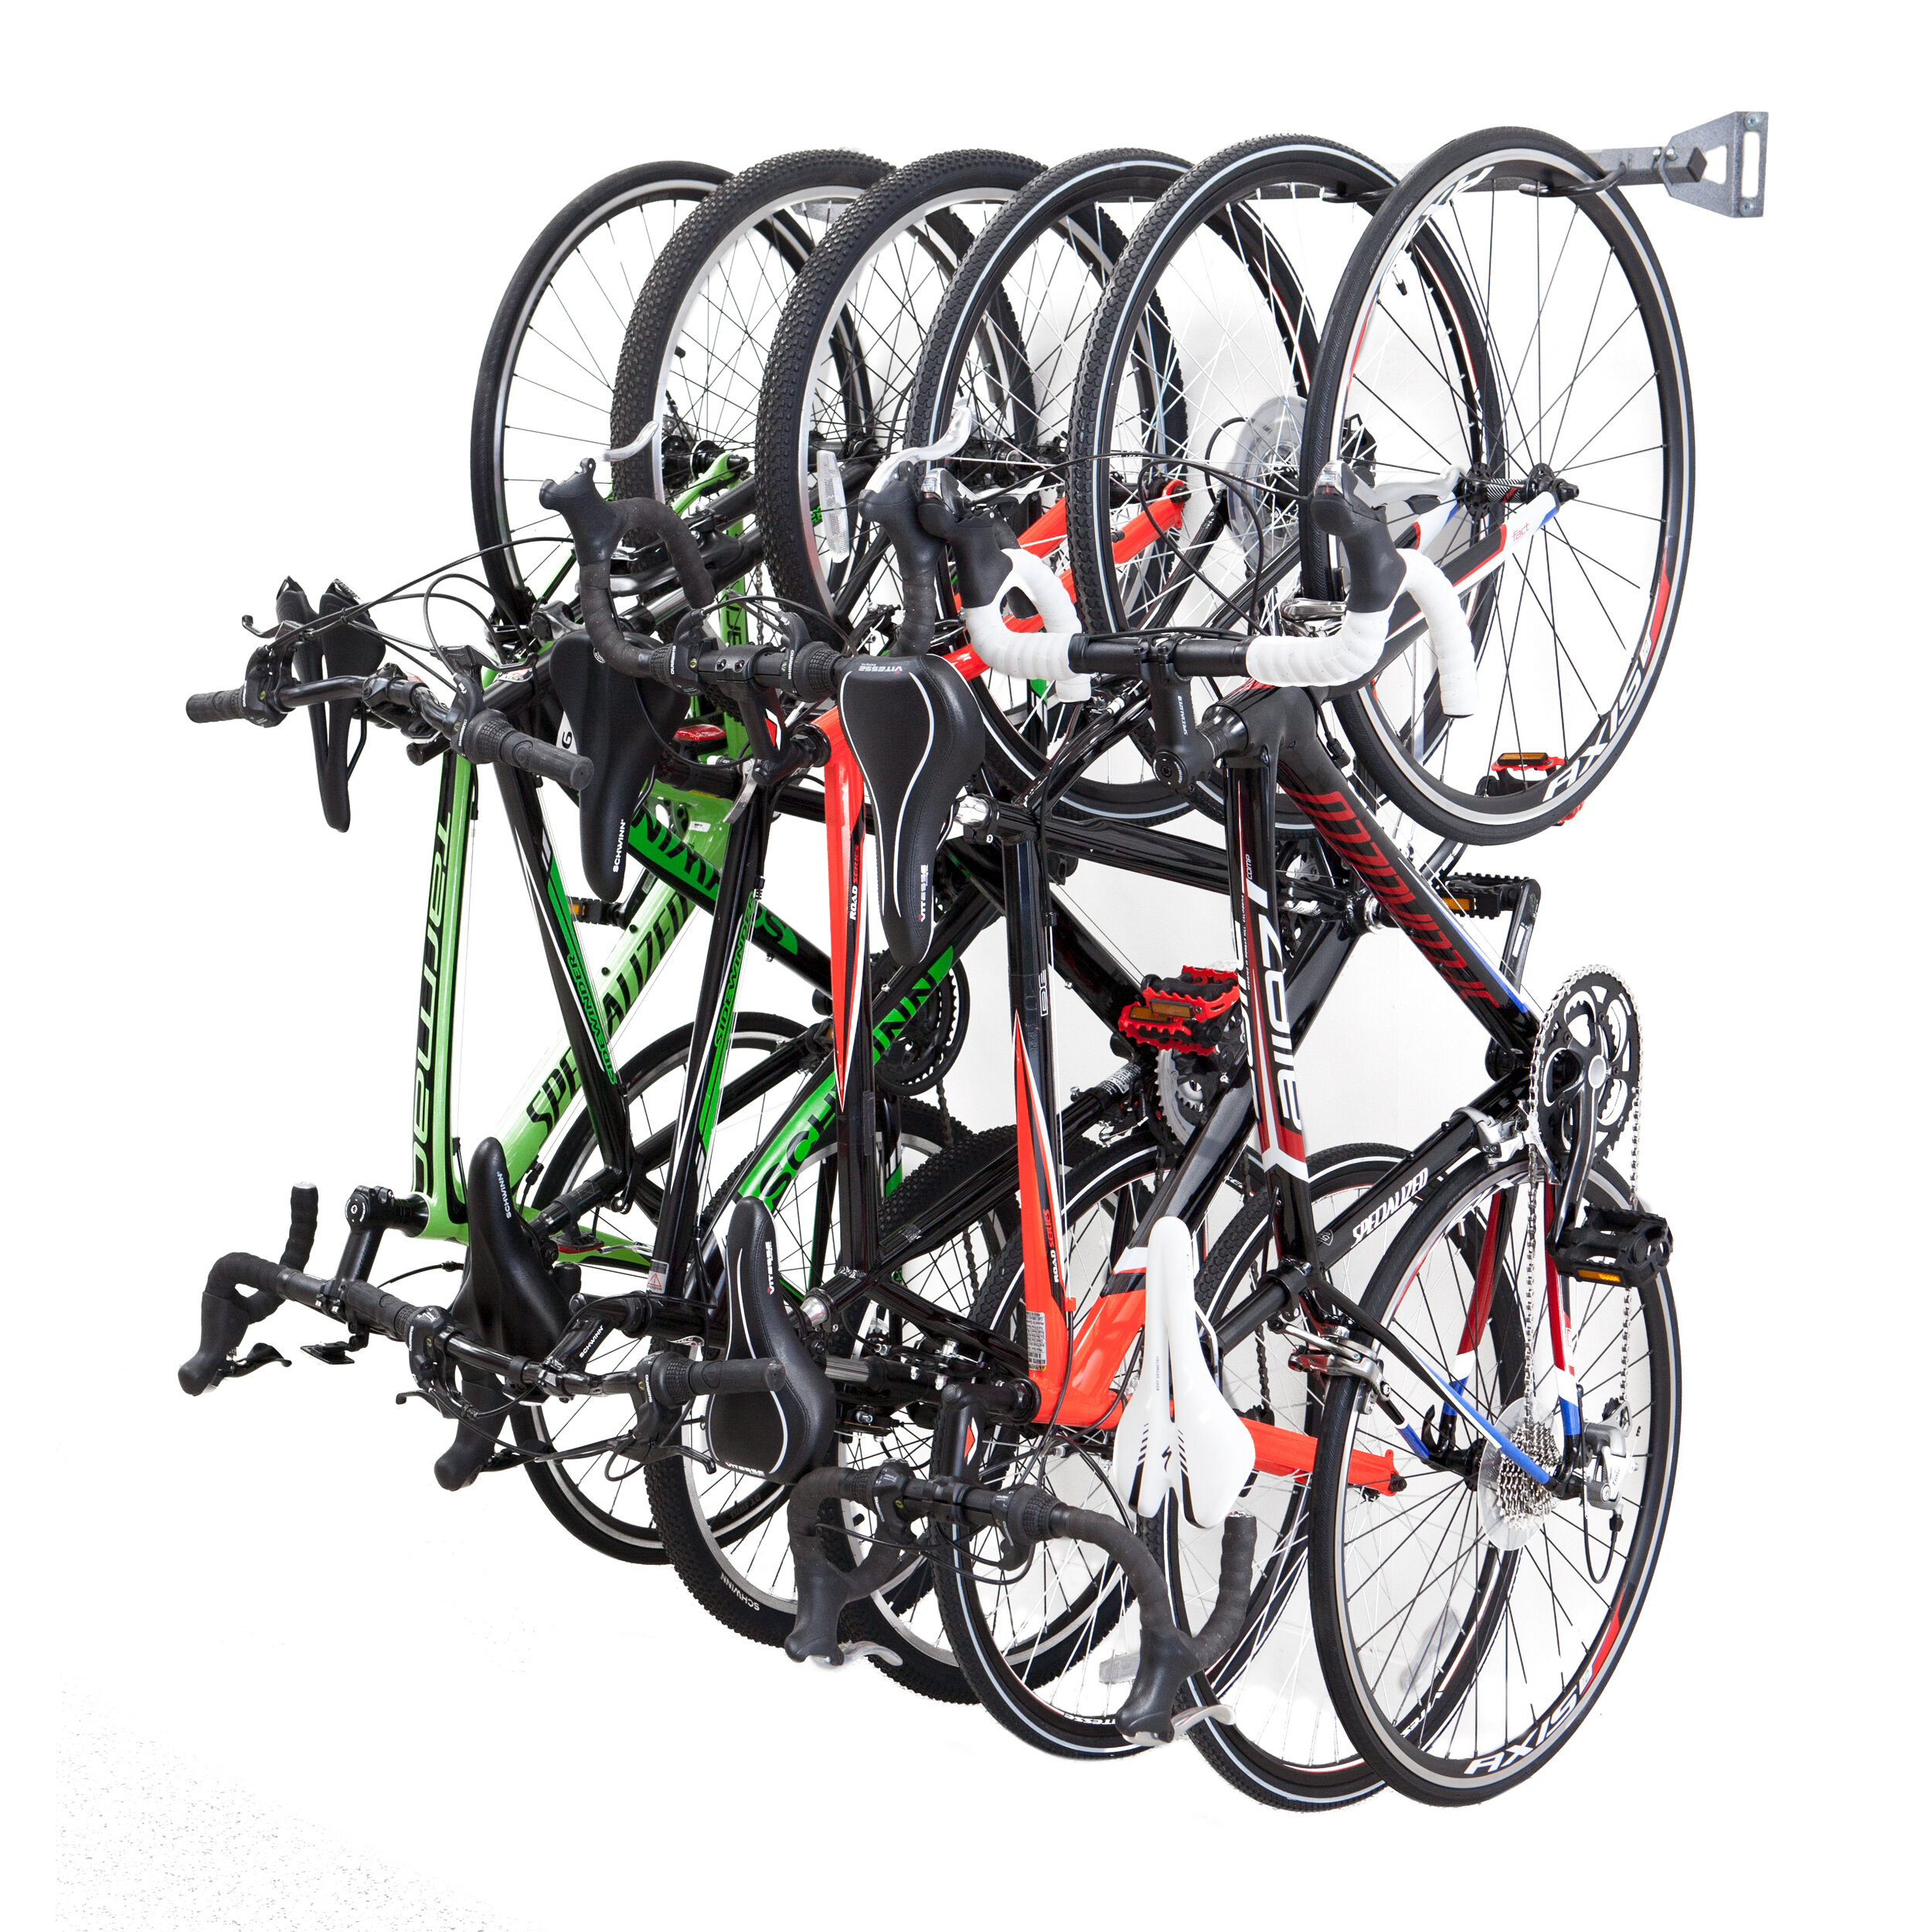 crafty like handlebars brother bike use in day my storage ideas set rack idea think as of this wall and spare i pin pinterest mount would img future law